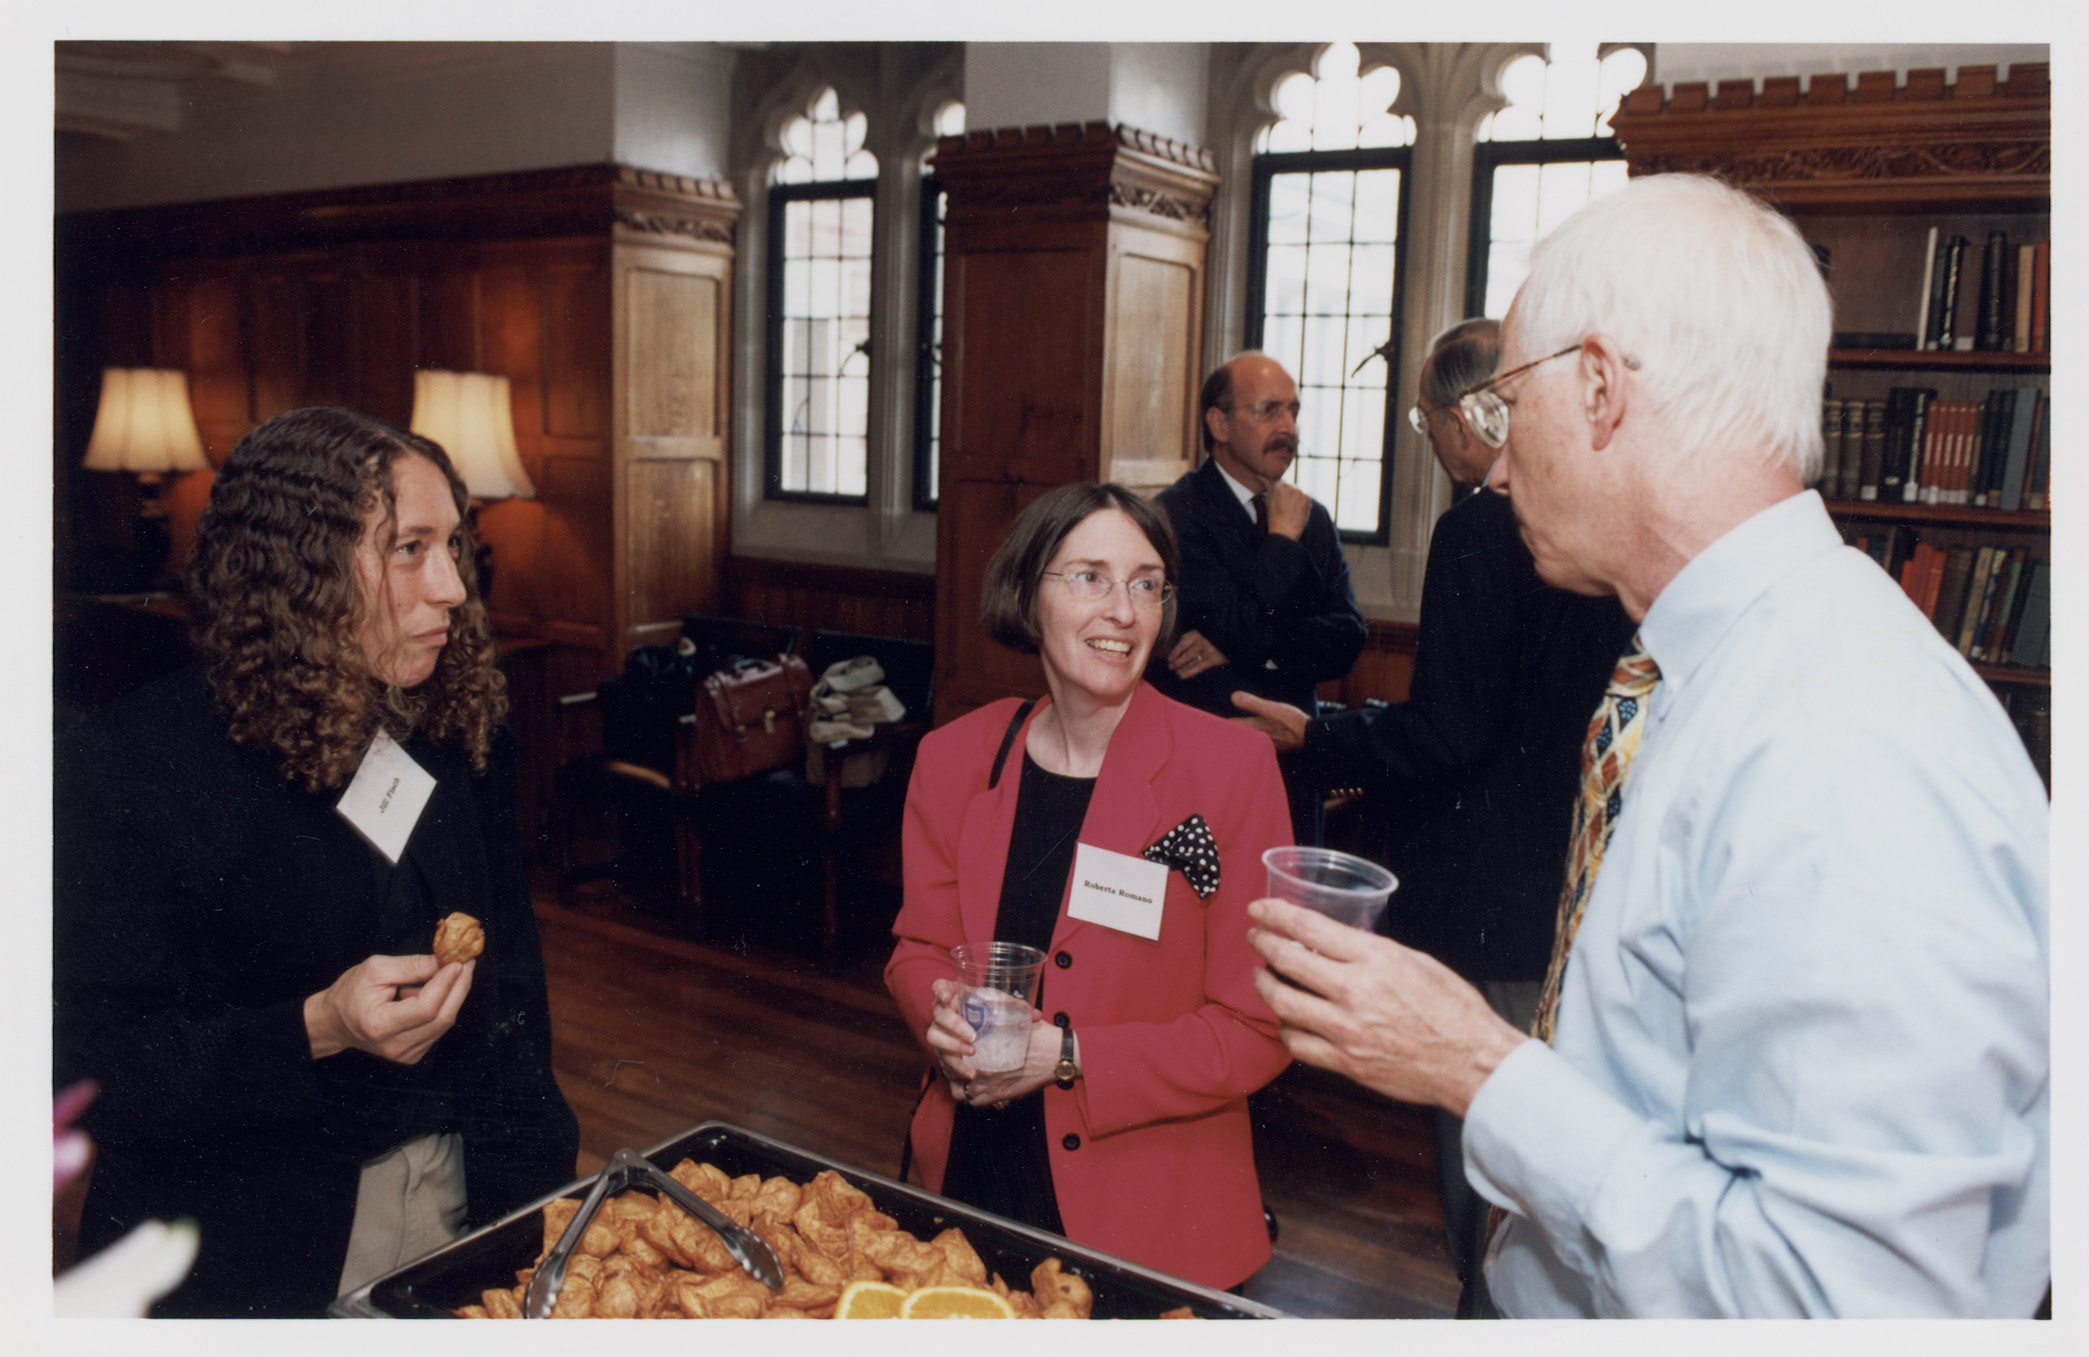 Fordham Law Prof. Jill Fisch '85, YLS Prof. and Center Dir. Roberta Romano '80, and YLS Prof. Alan Schwartz '64